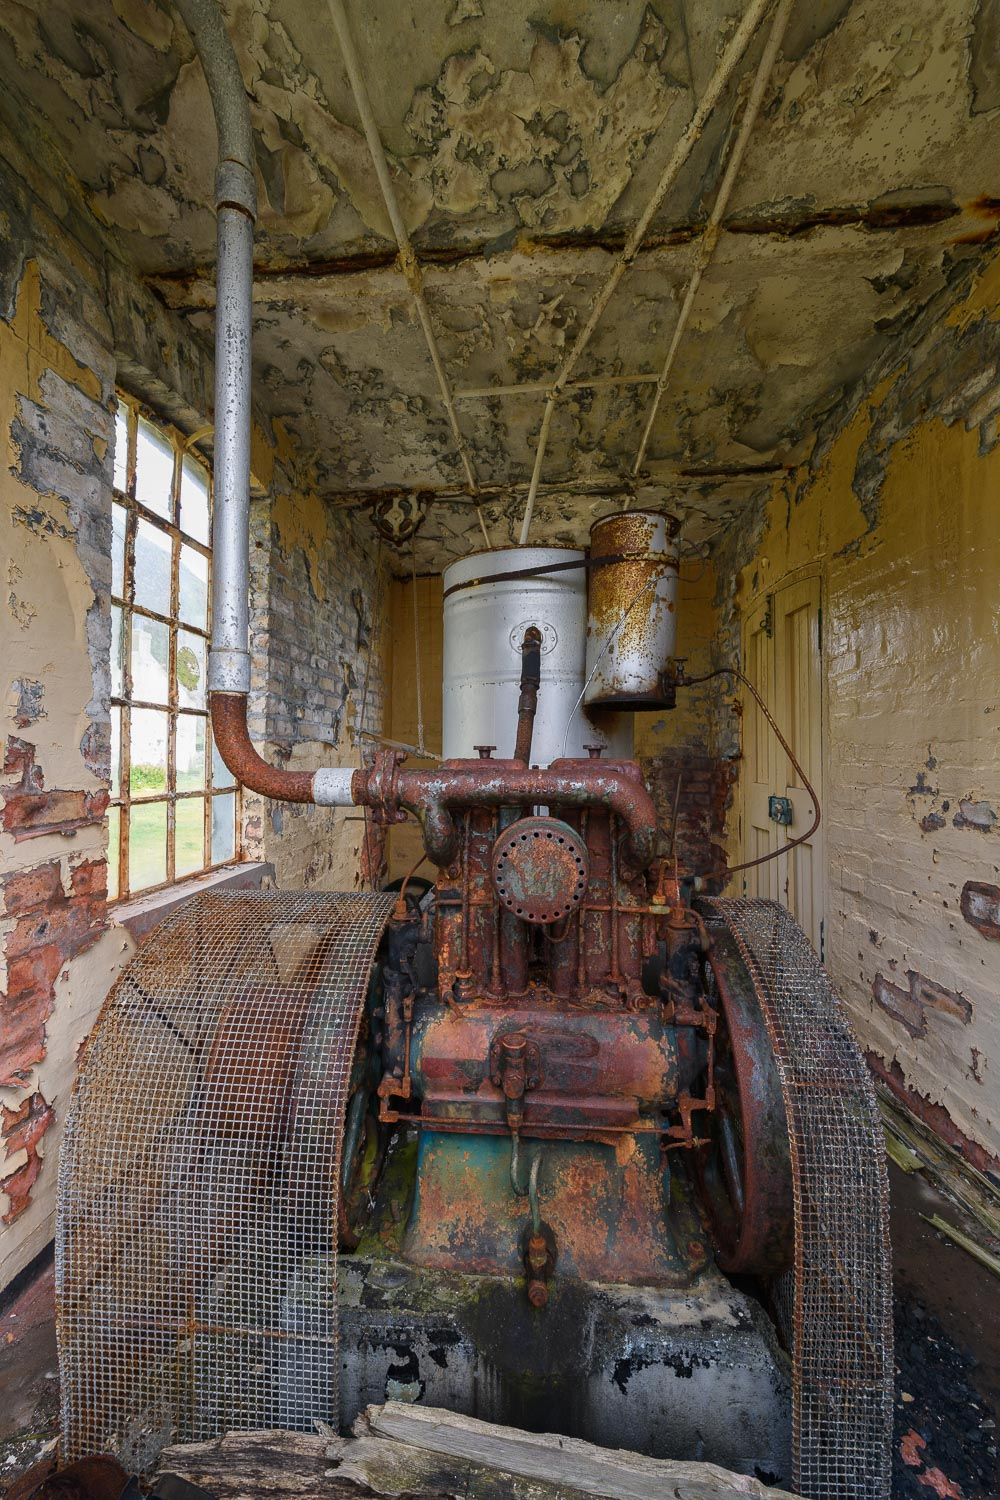 Disused Machinery